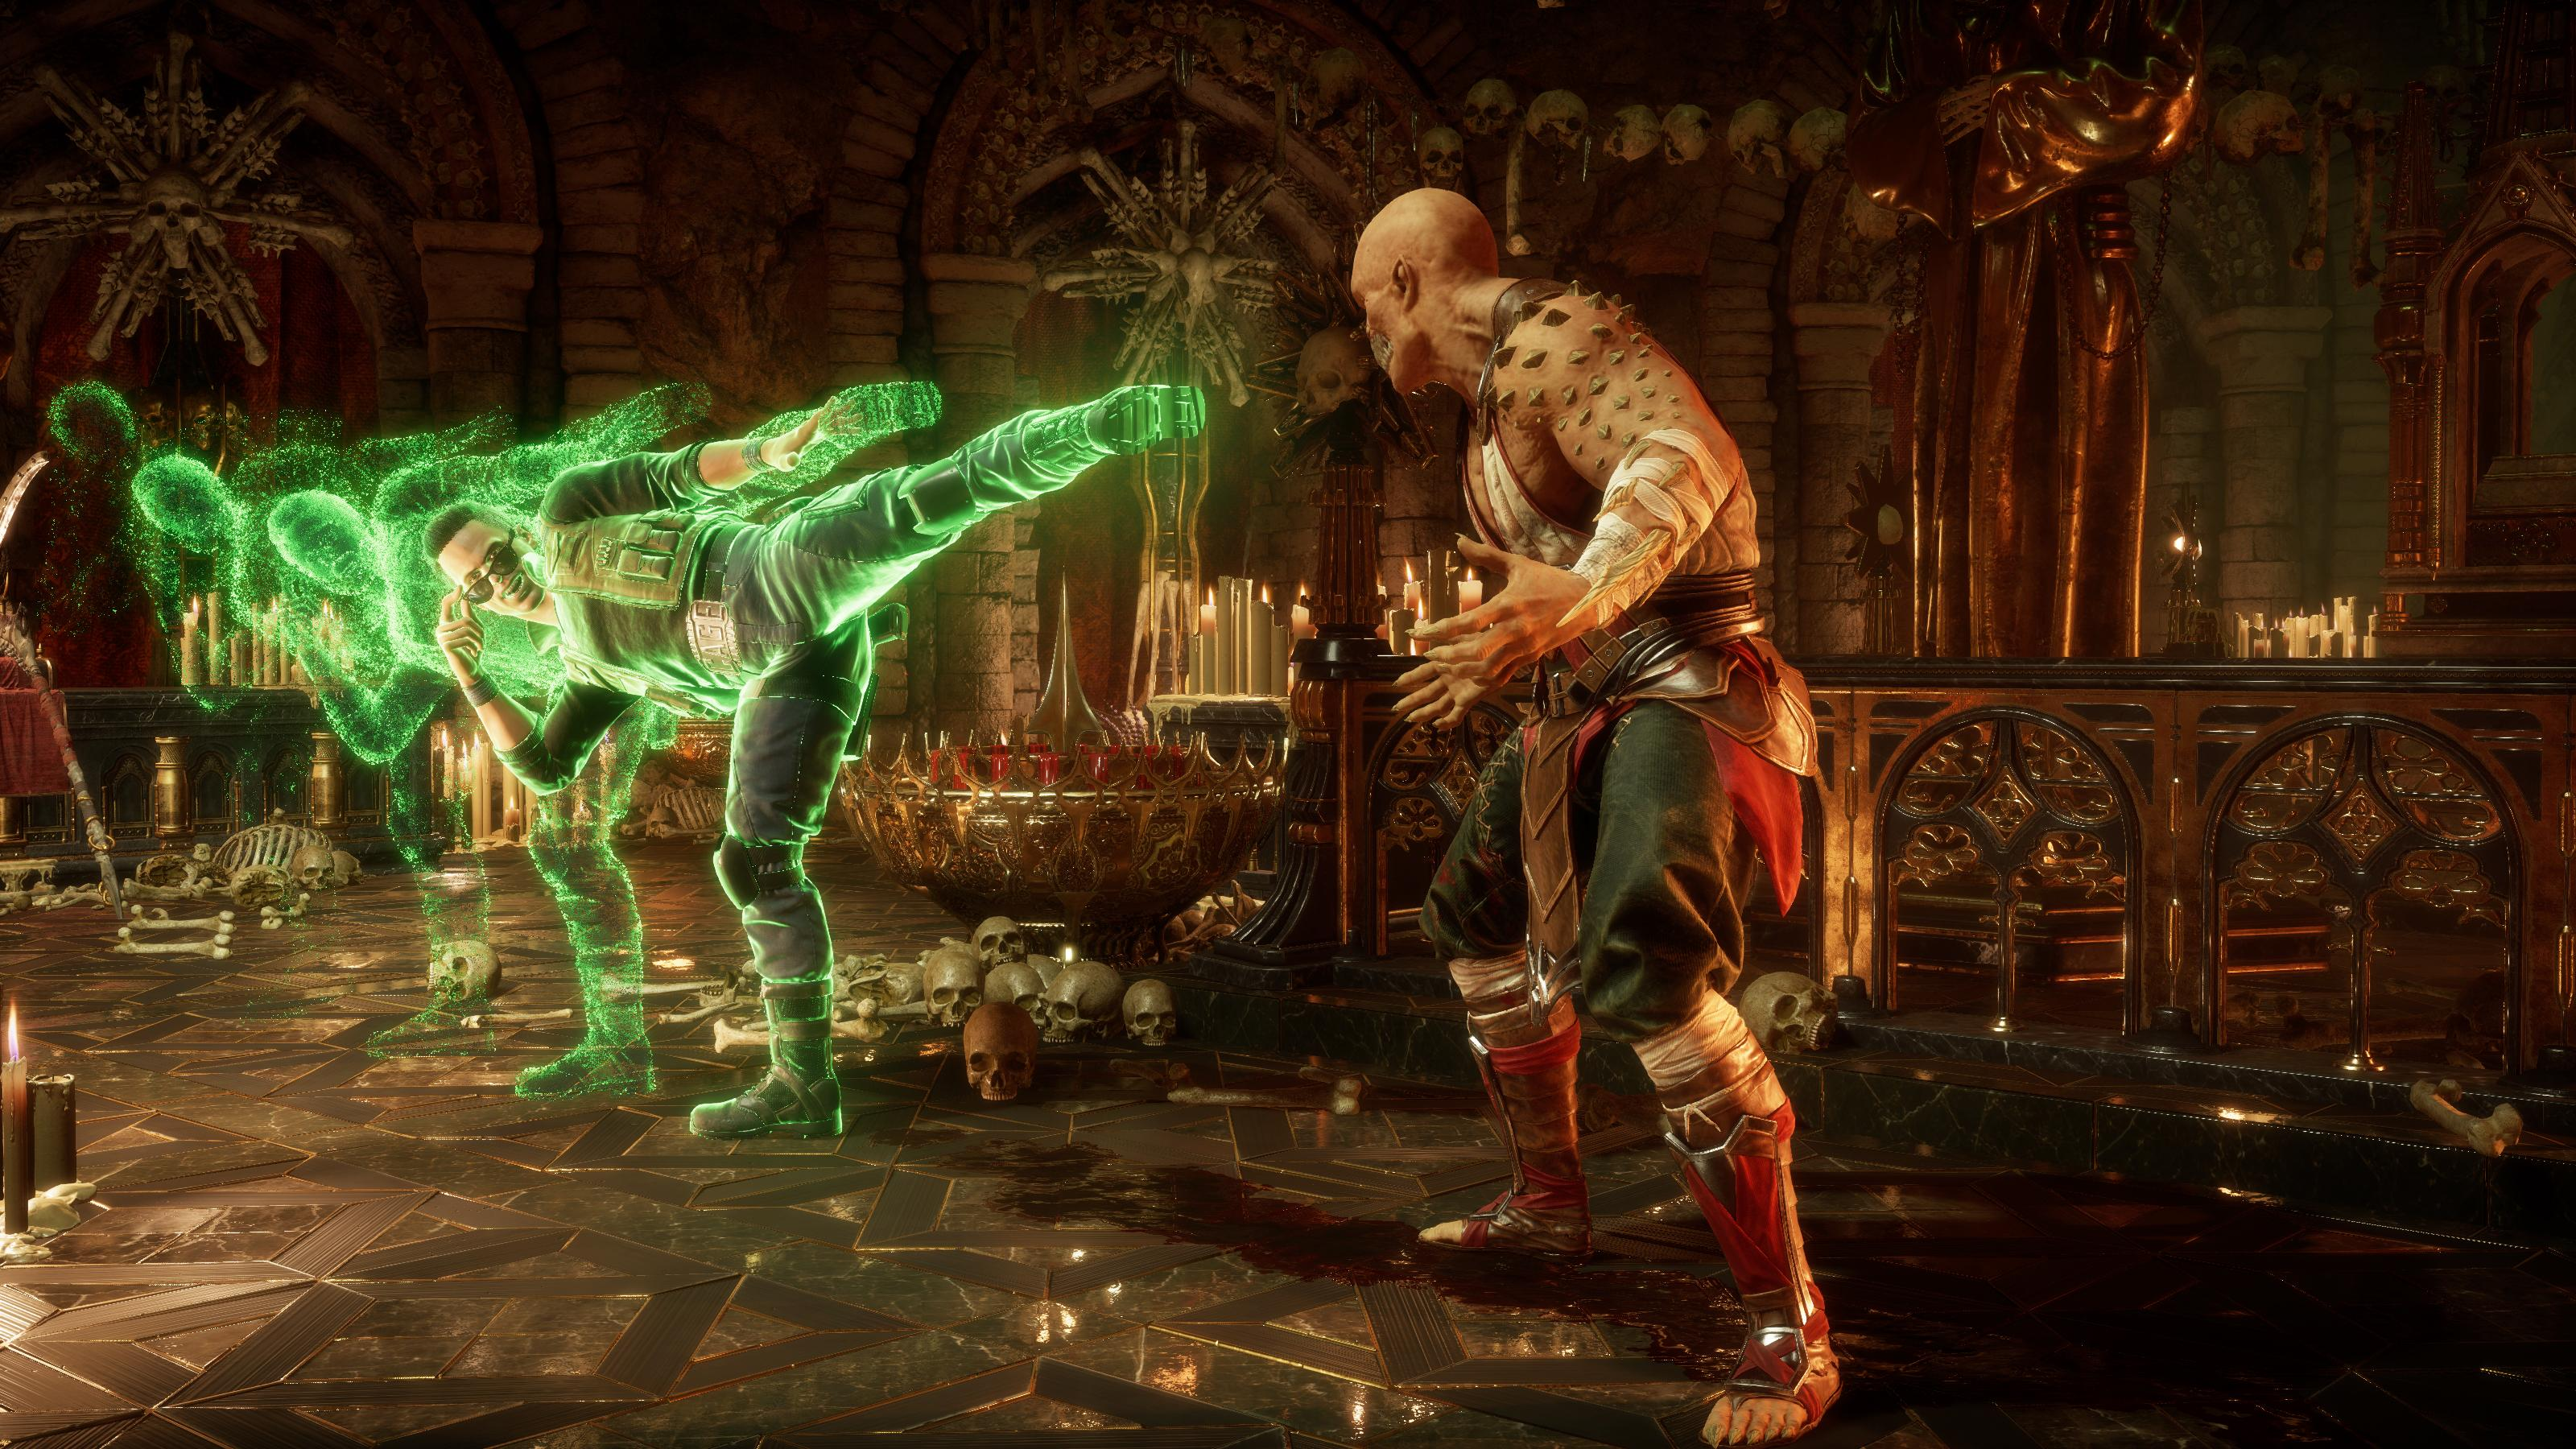 Picture with tags: Mortal Kombat 11, Games, Gaming